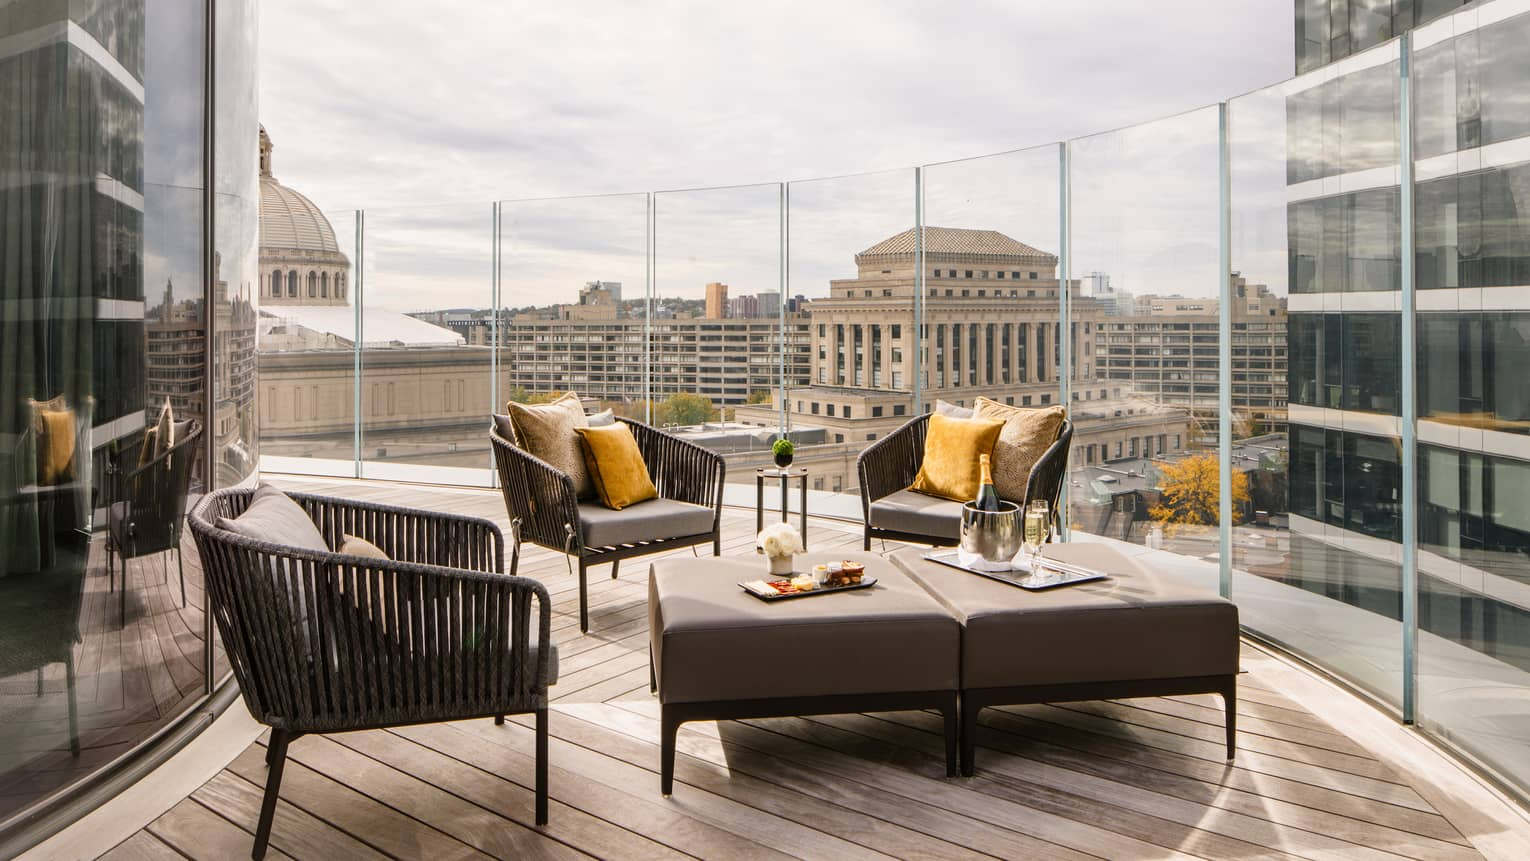 Wrap-around balcony with grey lounge chairs and table, view of Boston skyline